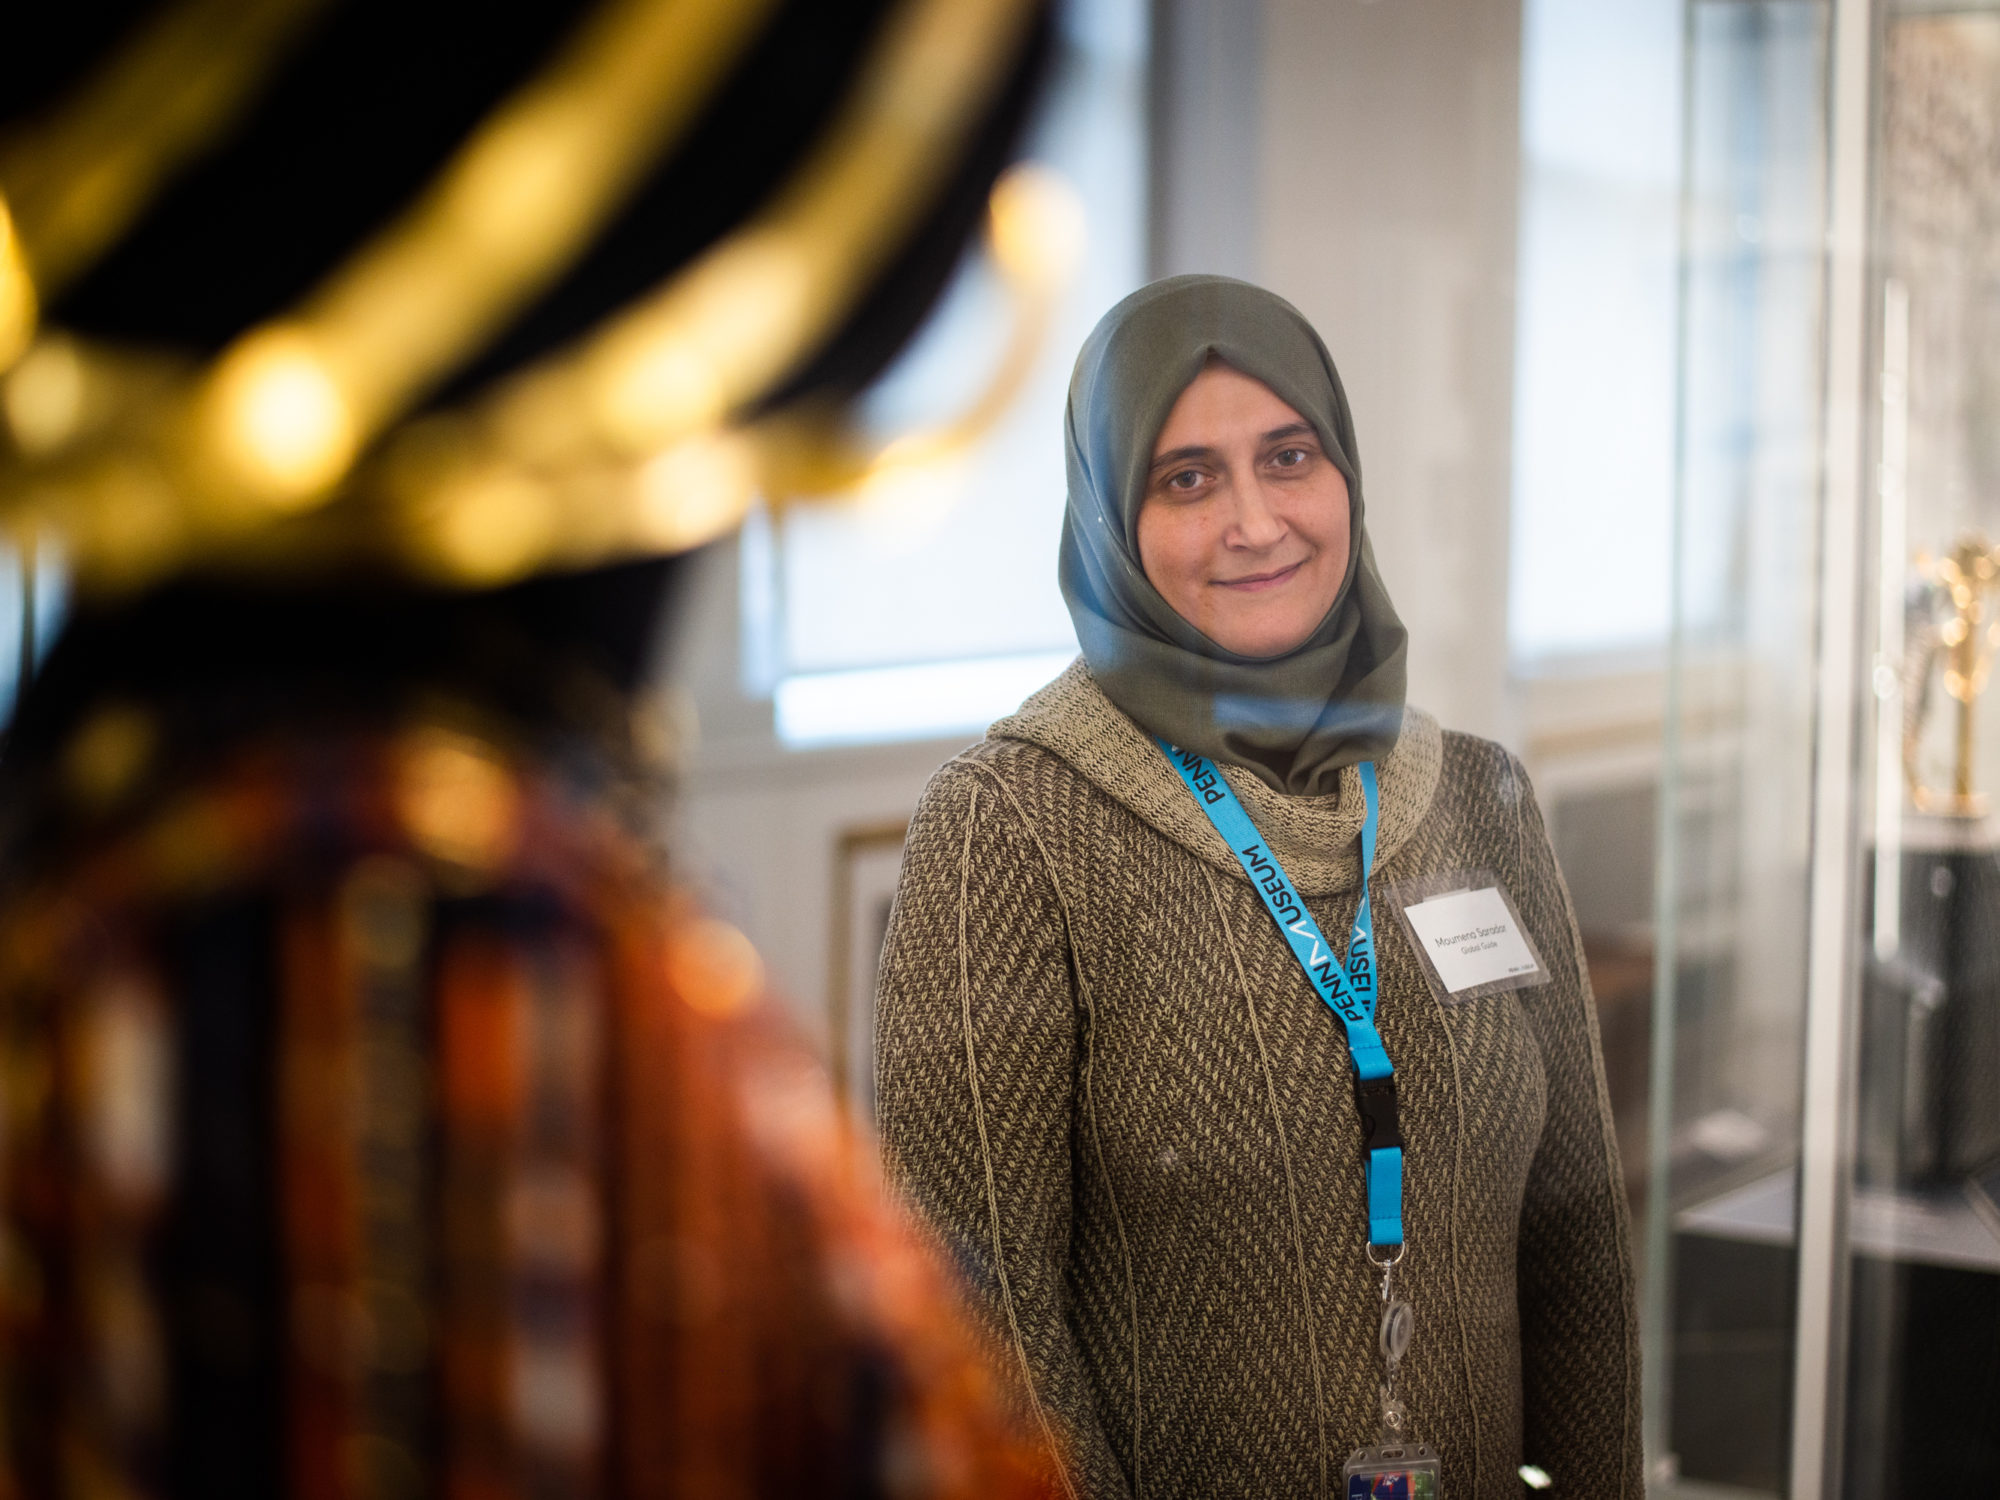 Refugee docents help bring Penn Museum's global collection to life